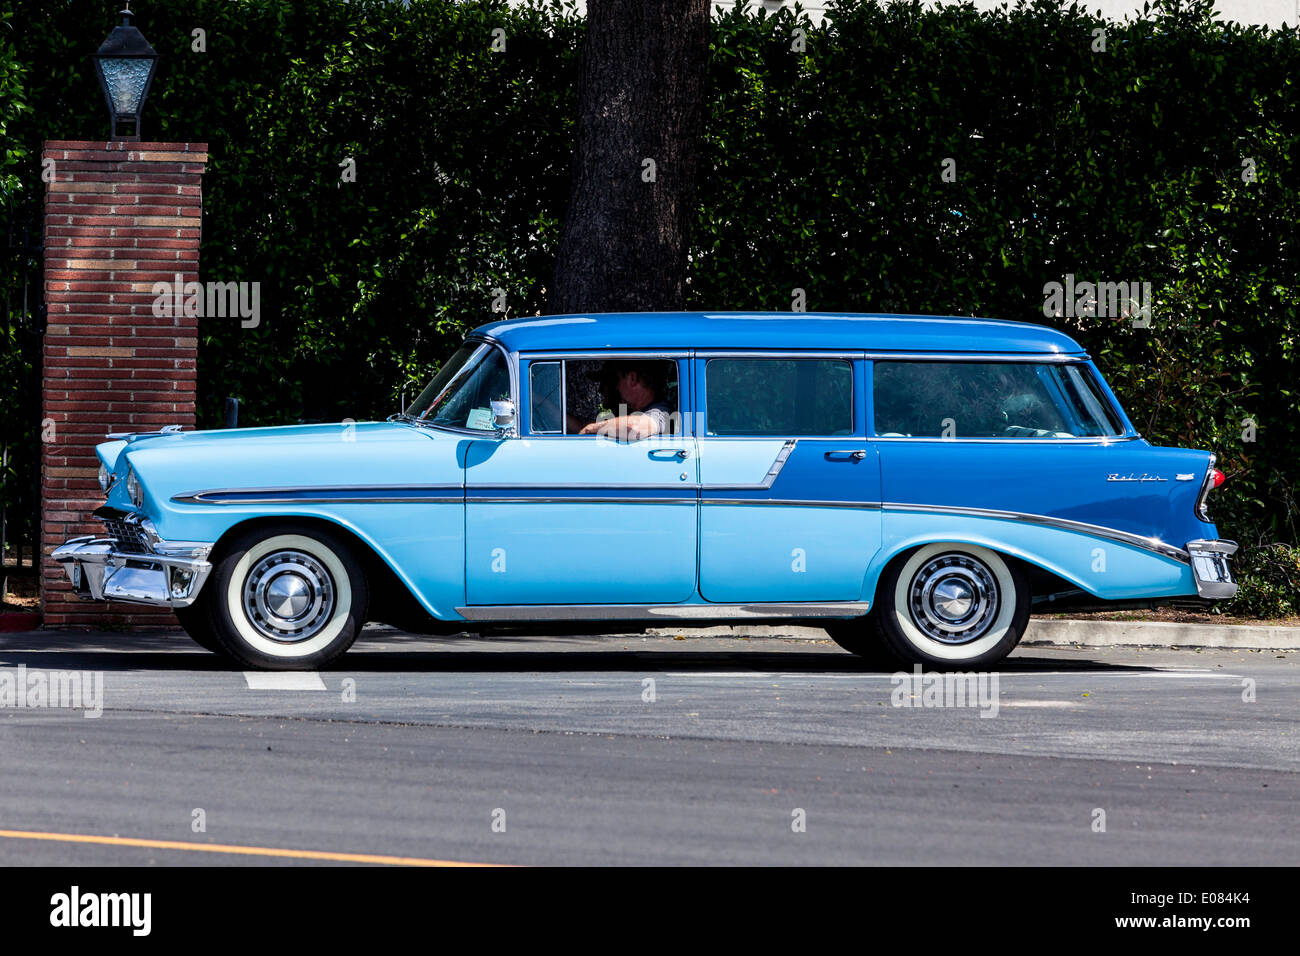 A 1956 Chevy Station Wagon Stock Photo, Royalty Free Image ...